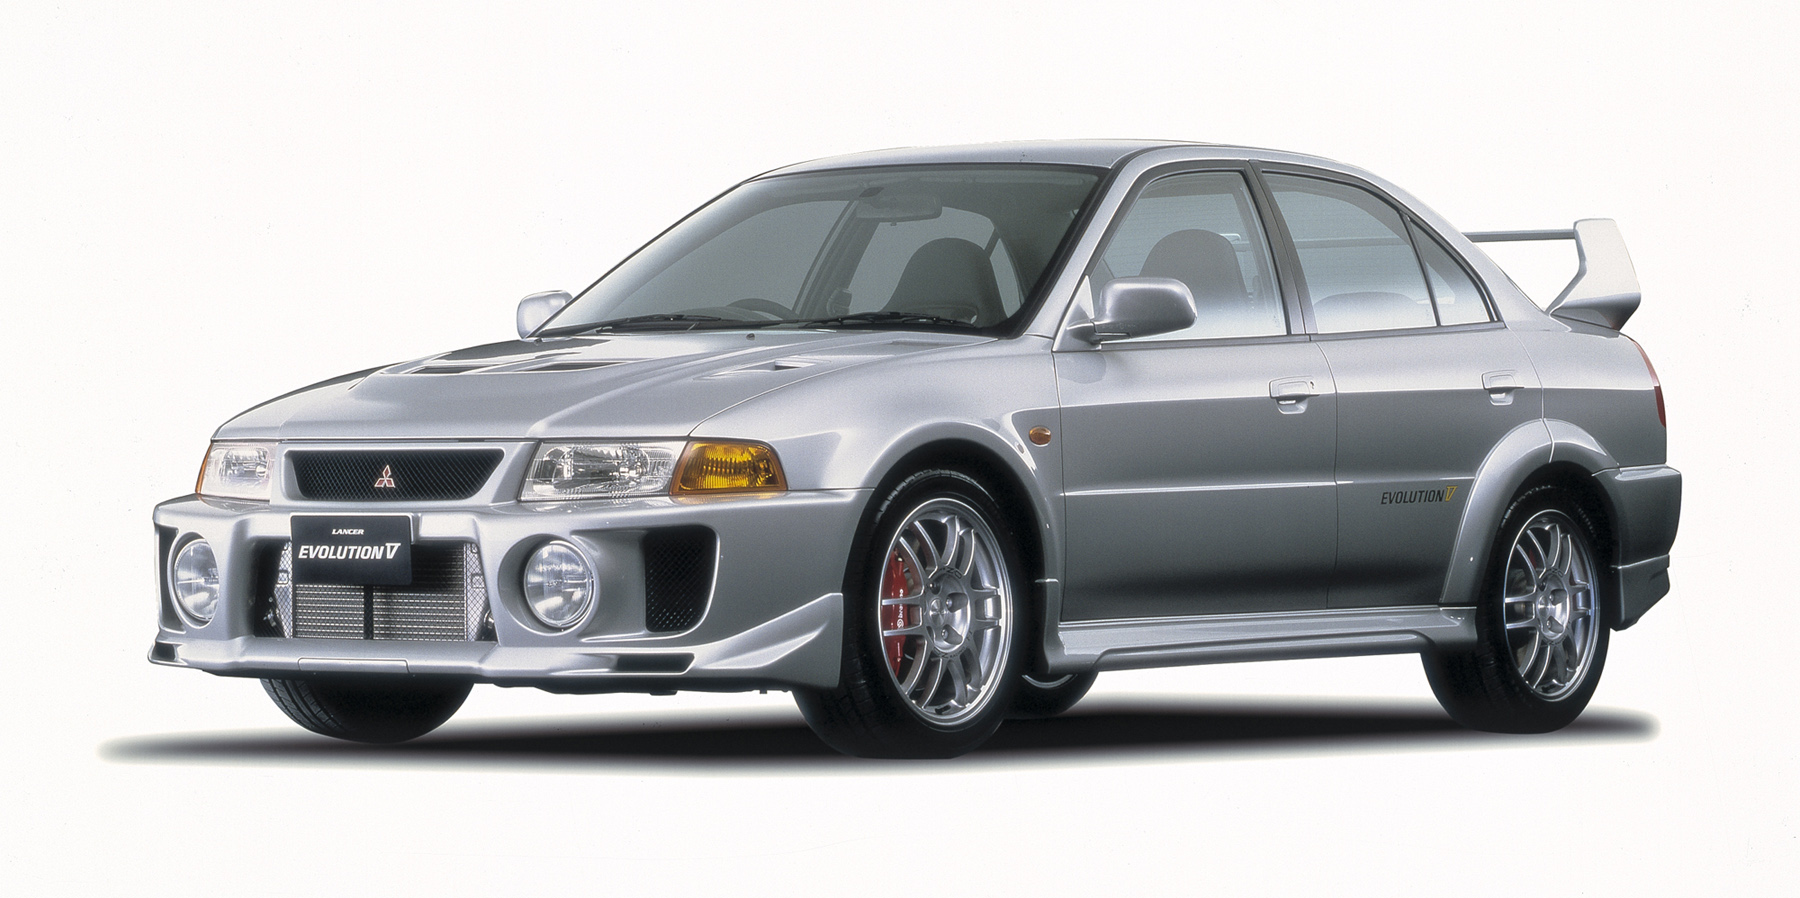 Mitsubishi Lancer Evolution IV 1996 - 1998 Sedan #1